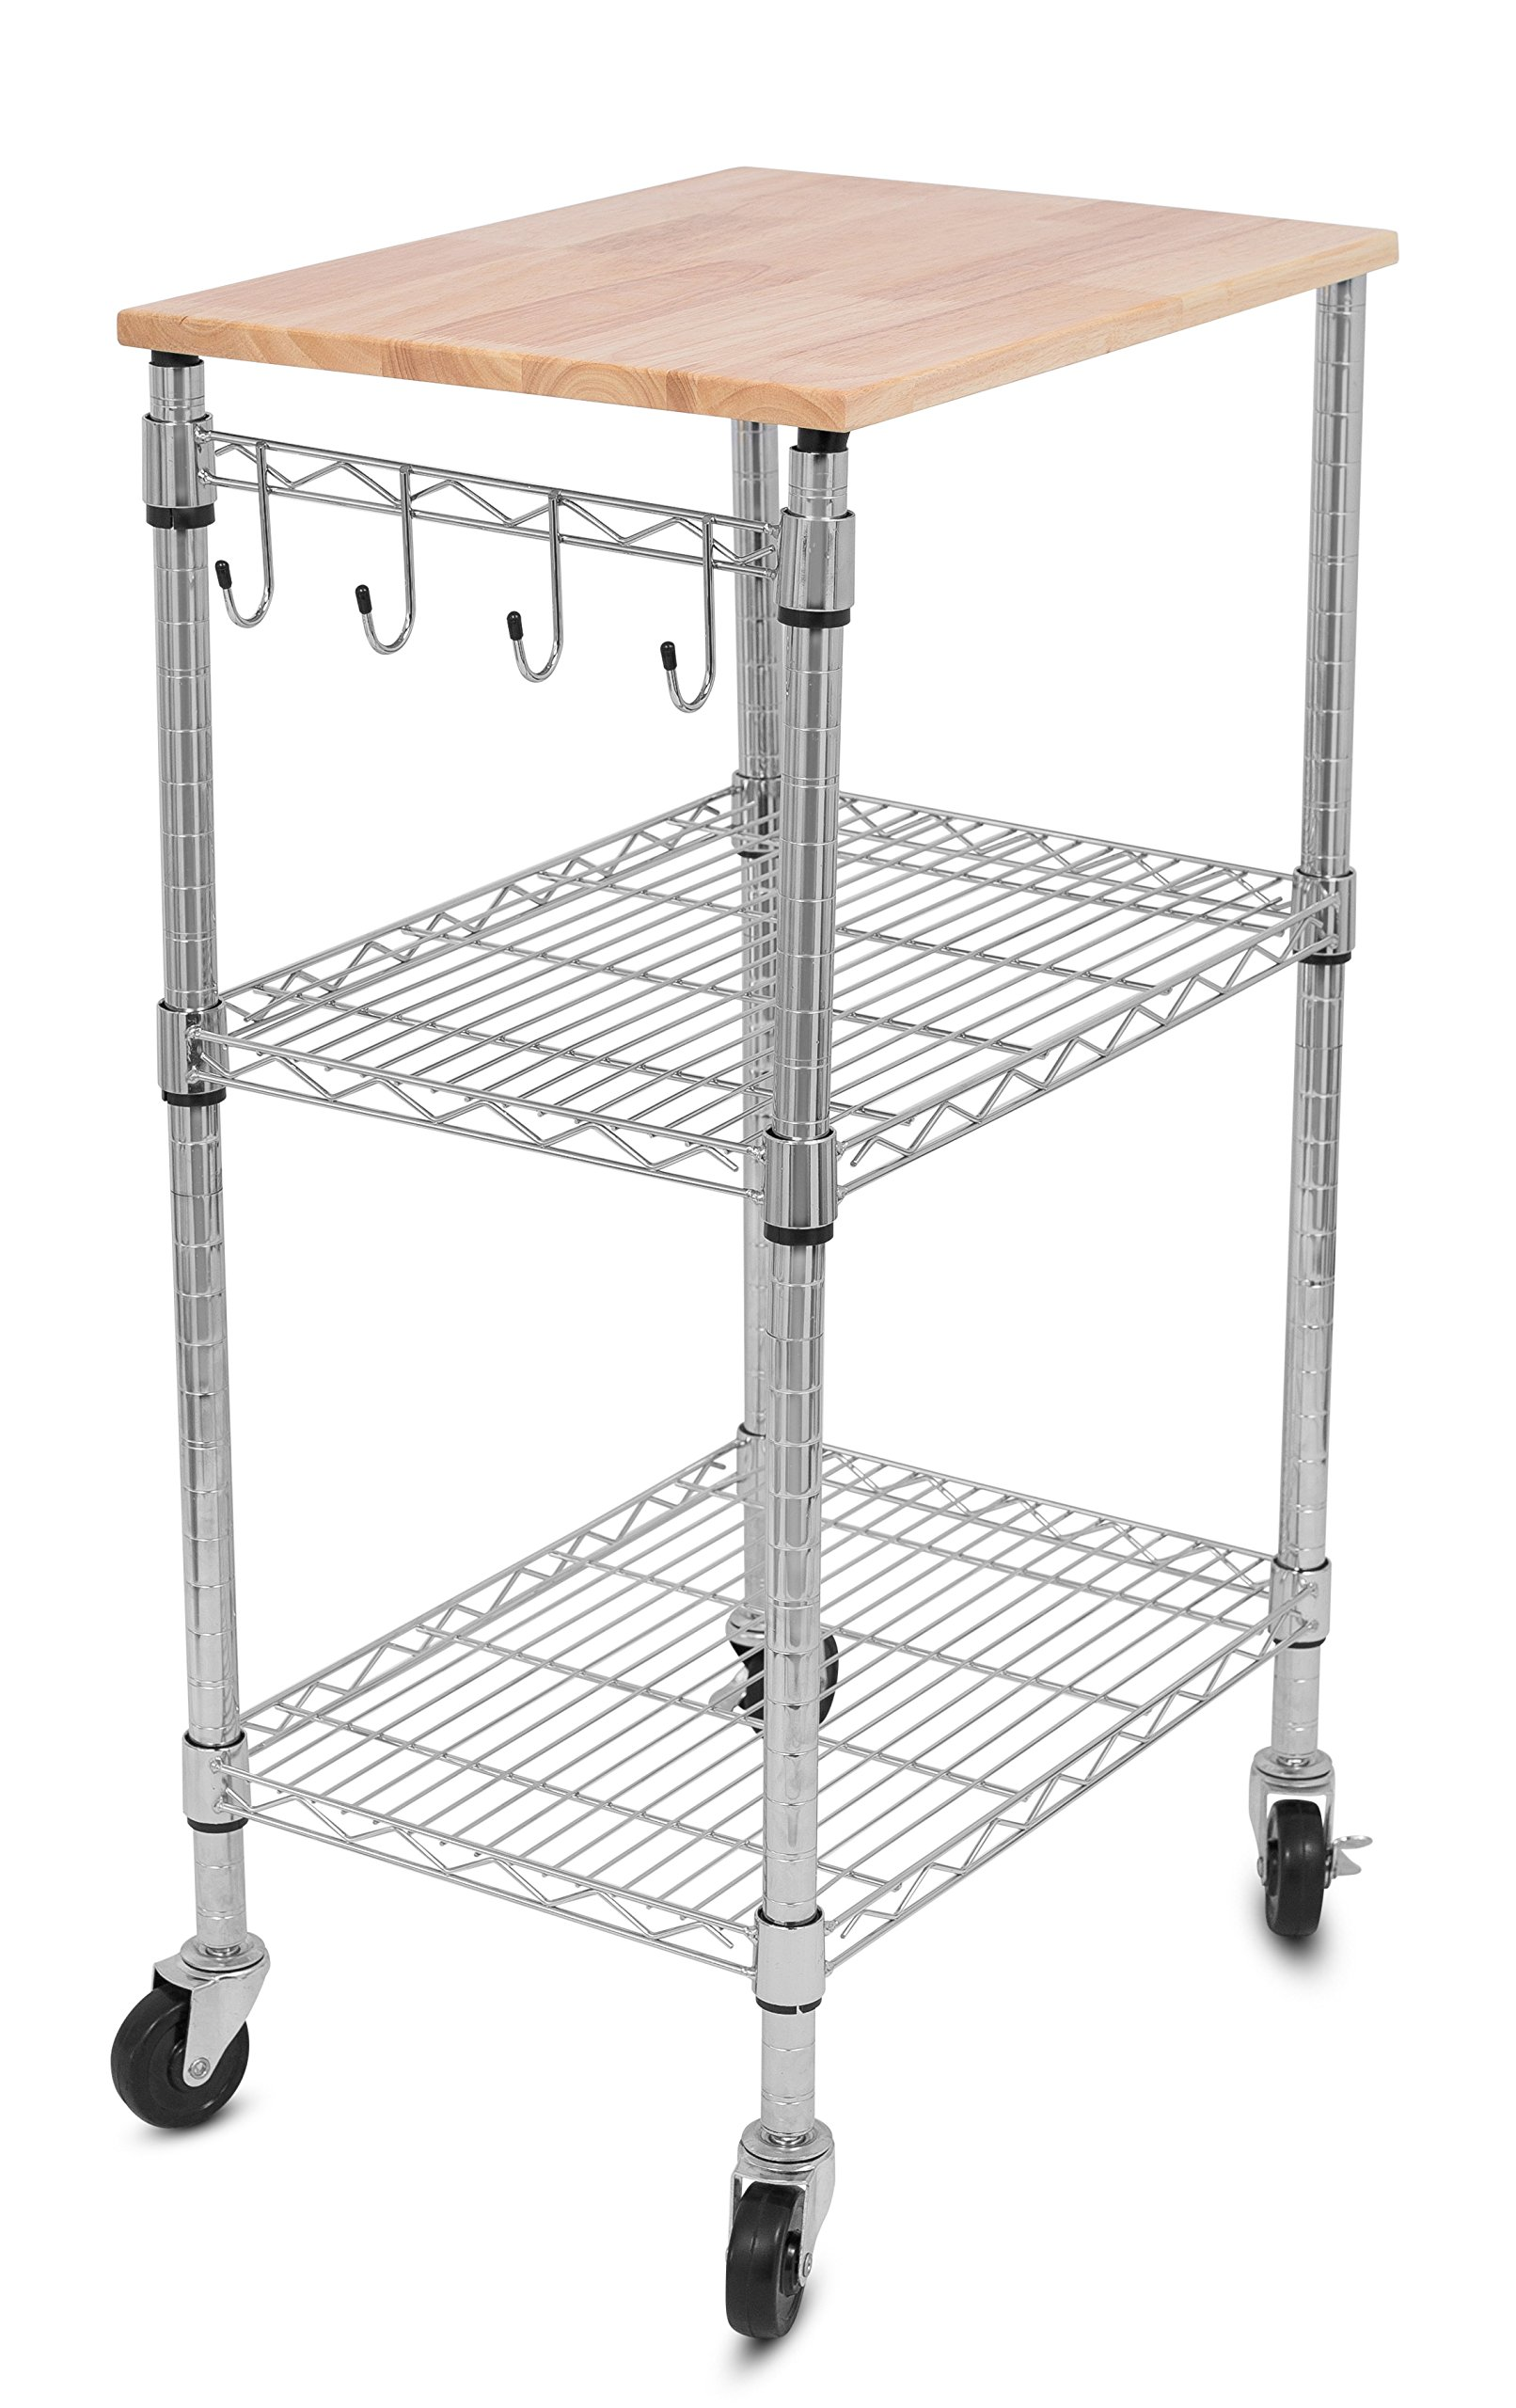 Internet's Best 3-Tier Kitchen Cart on Wheels - Kitchen Island Trolley with Locking Wheels - Appliances Microwave Stand - Removable Natural Wood Cutting Board - 4 Hooks Organizer Stainless Steel by Internet's Best